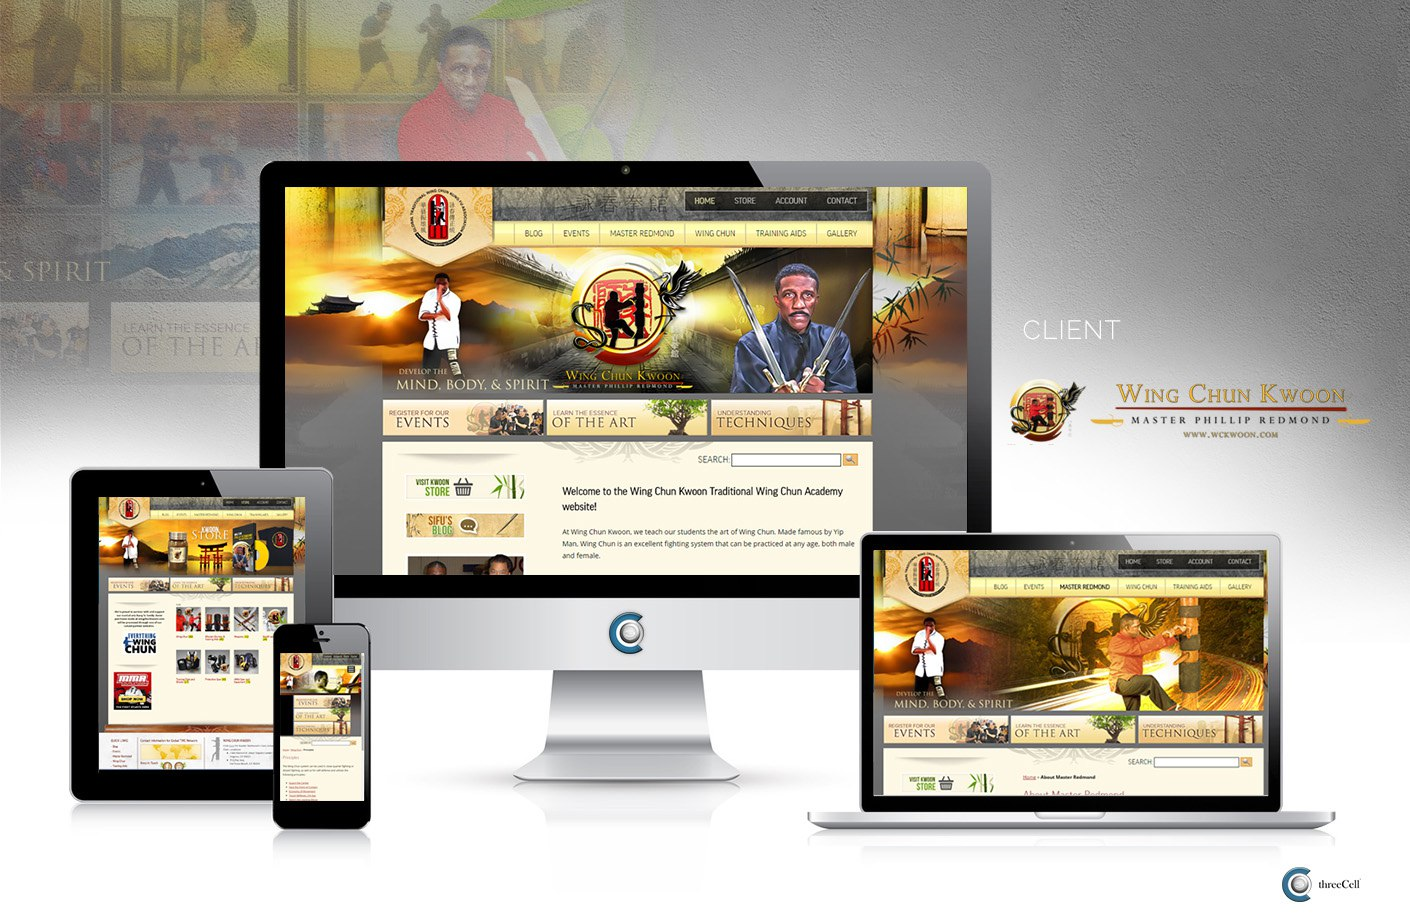 Wing Chun Kwoon - Website - ThreeCell Web Design